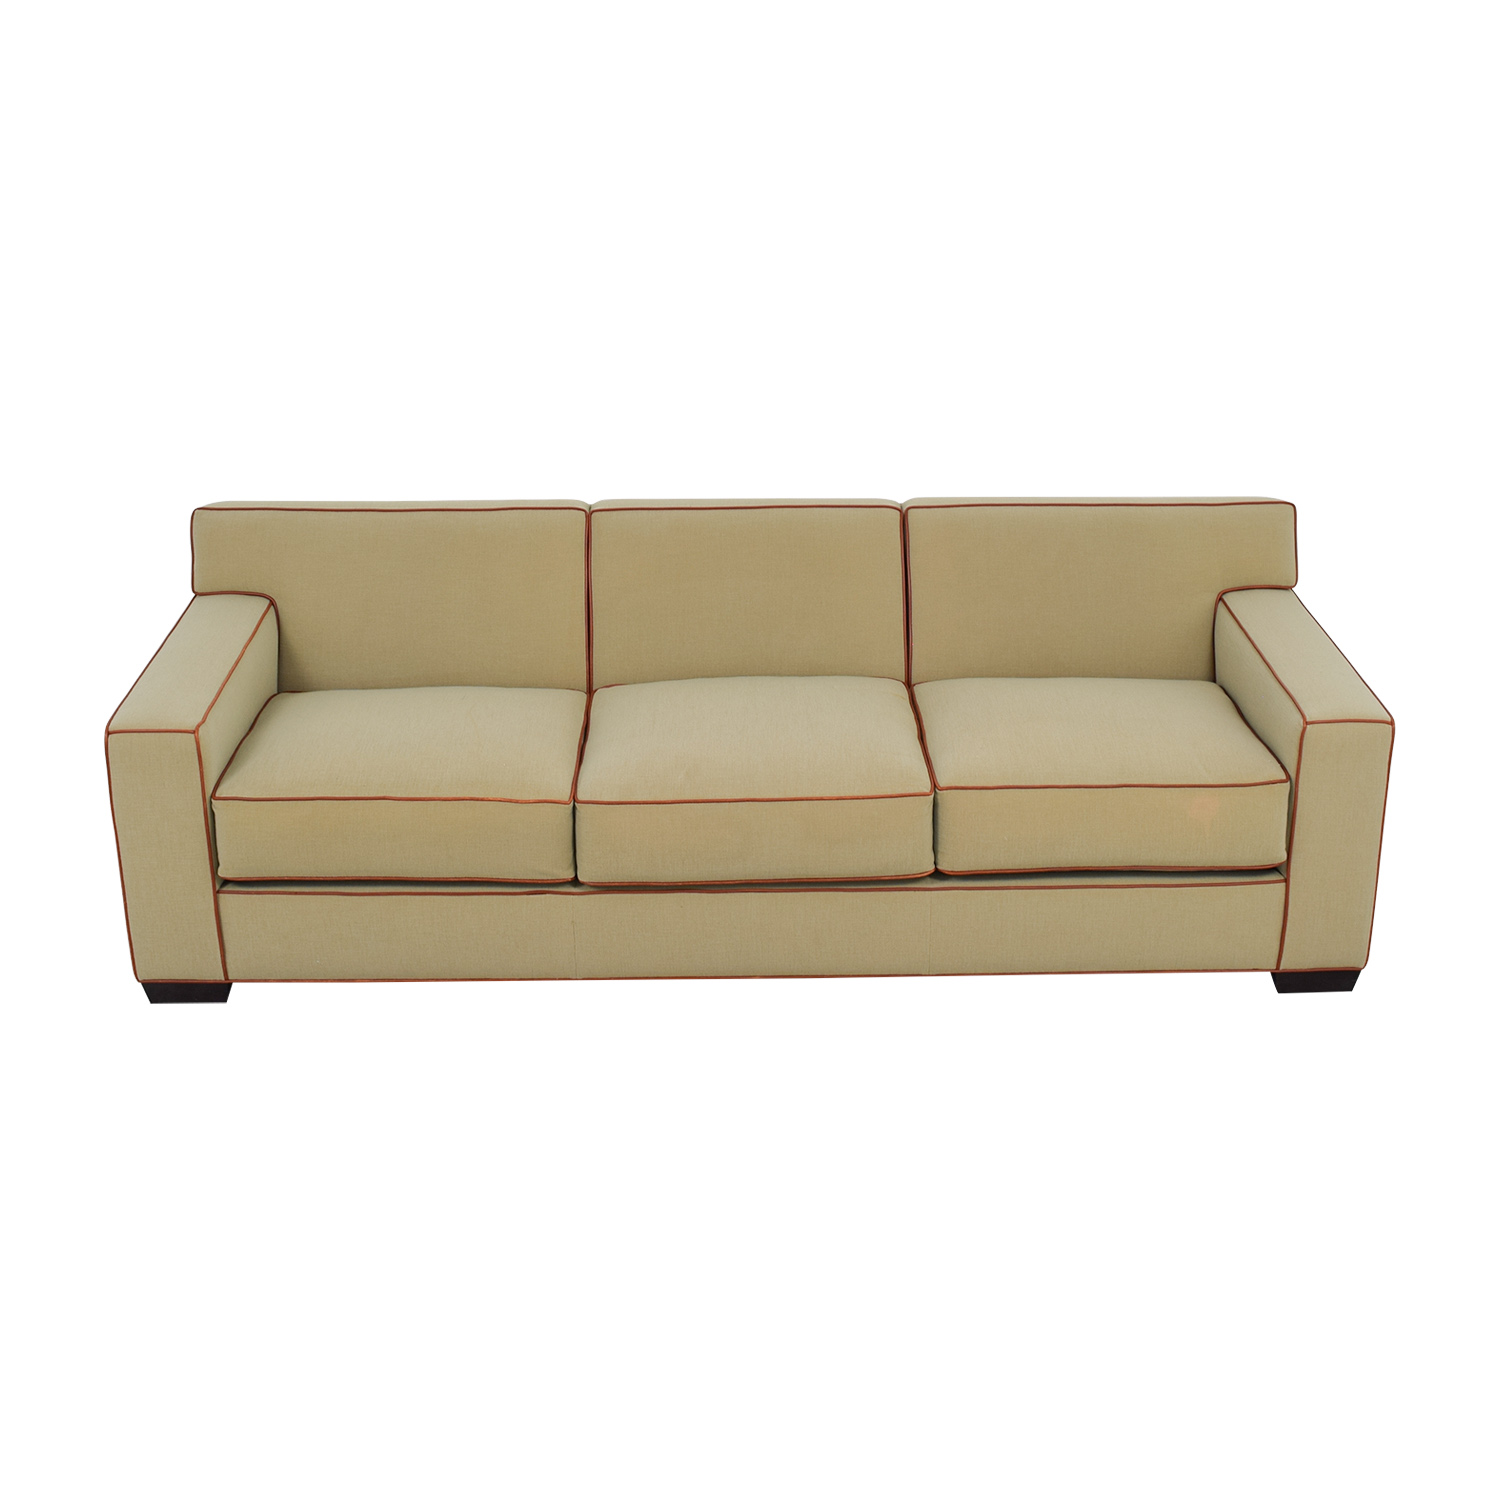 Mattaliano Mattaliano Beige with Cognac Leather Trimmed Three-Cushion Sofa Sofas